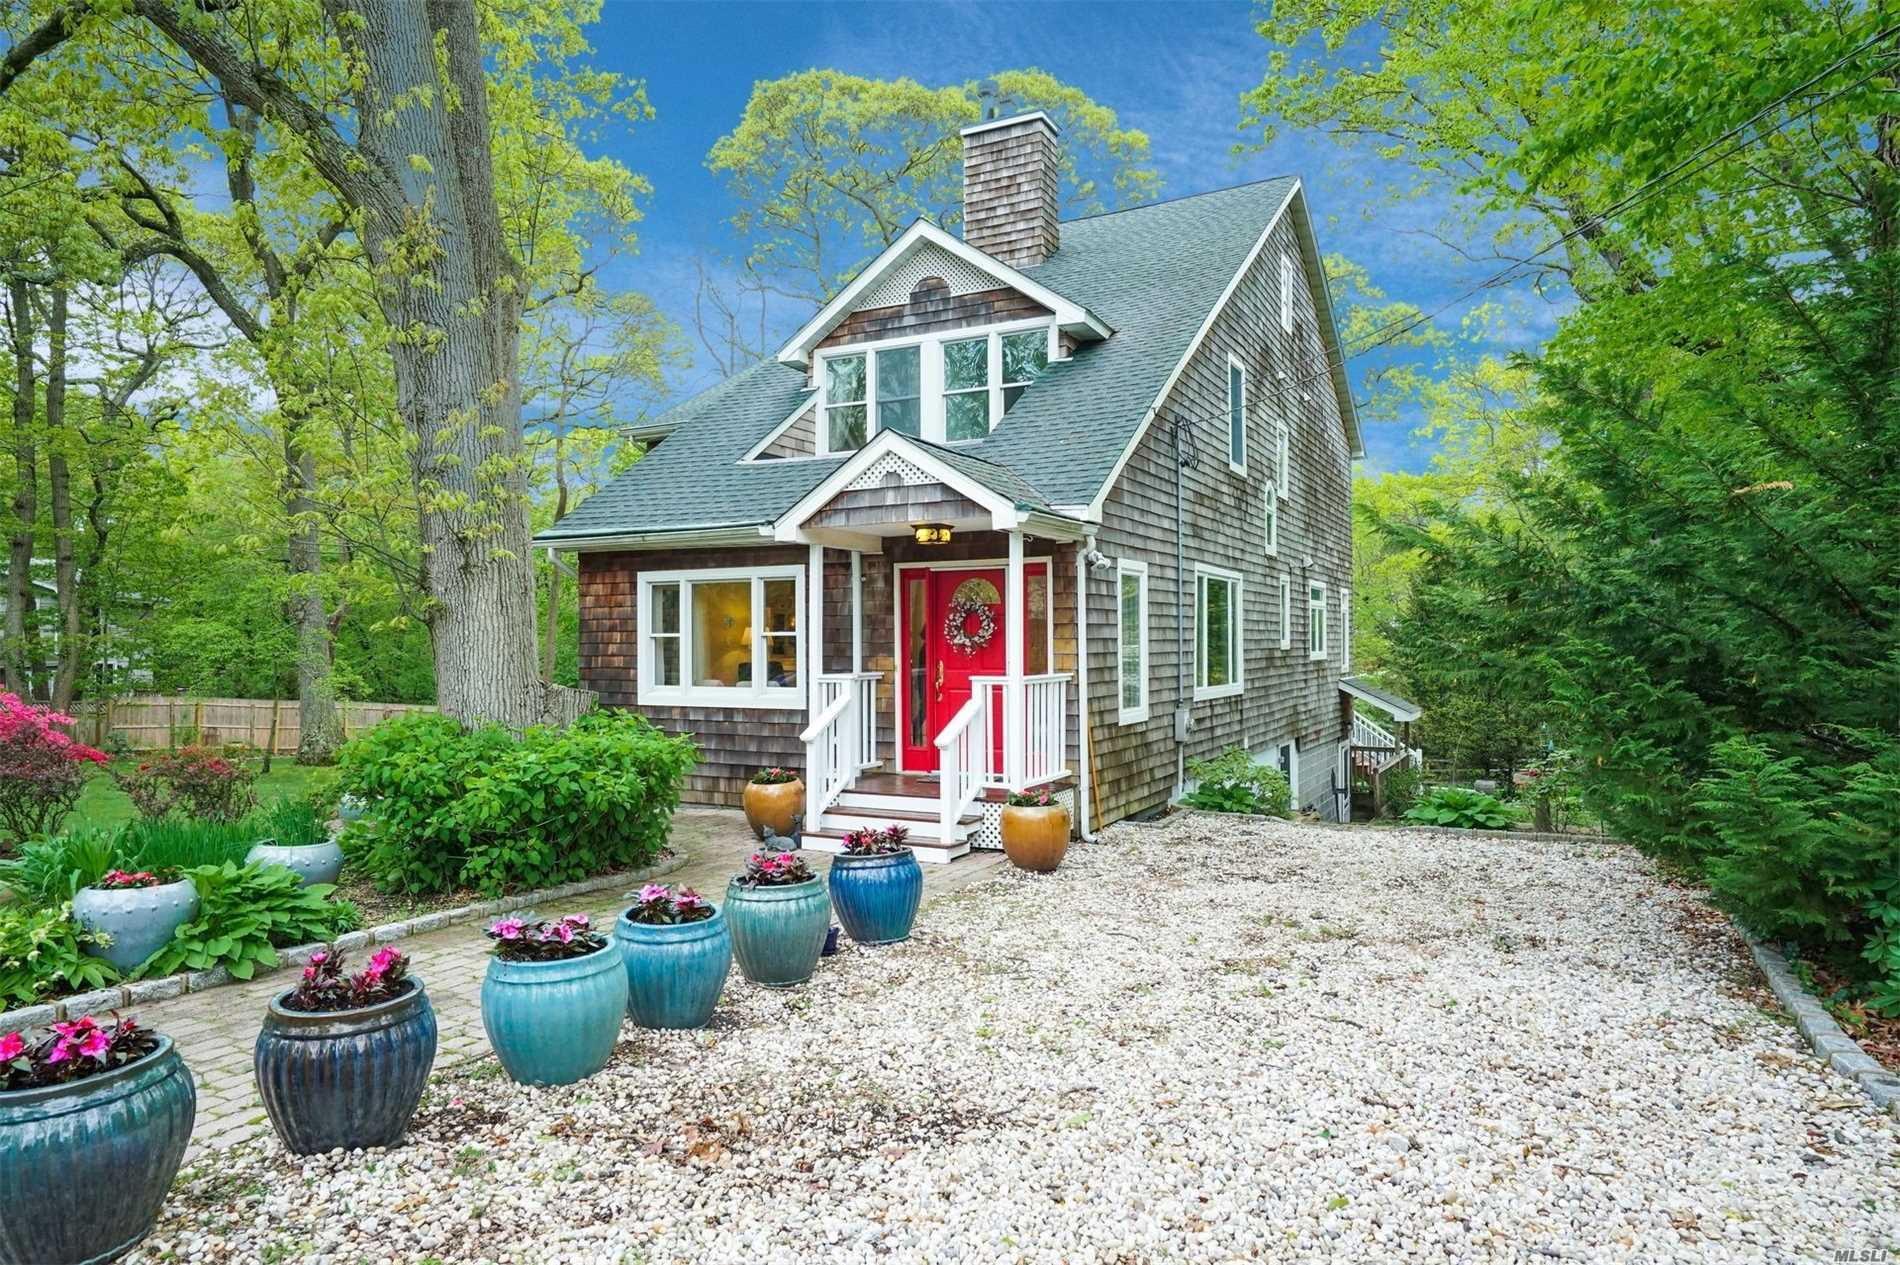 Spectacular StonyBrook Village colonial w/4 bedrms and 3 full bths nestled on a large private wooded lot.The entire home was expanded & renovated in 2000.Open floorplan includes large EIK w/maple cabs&granite which flows to dining area & large den w/fp&large windows overlooking tranquil property.Huge master suite w/skylights , vaulted ceiling , fp, sitting area, spa tub & balcony. Full walkout basement w/fp, french doors, egress windows, rough plumbing for kit & bth and new laundry rm.Simply charming!!